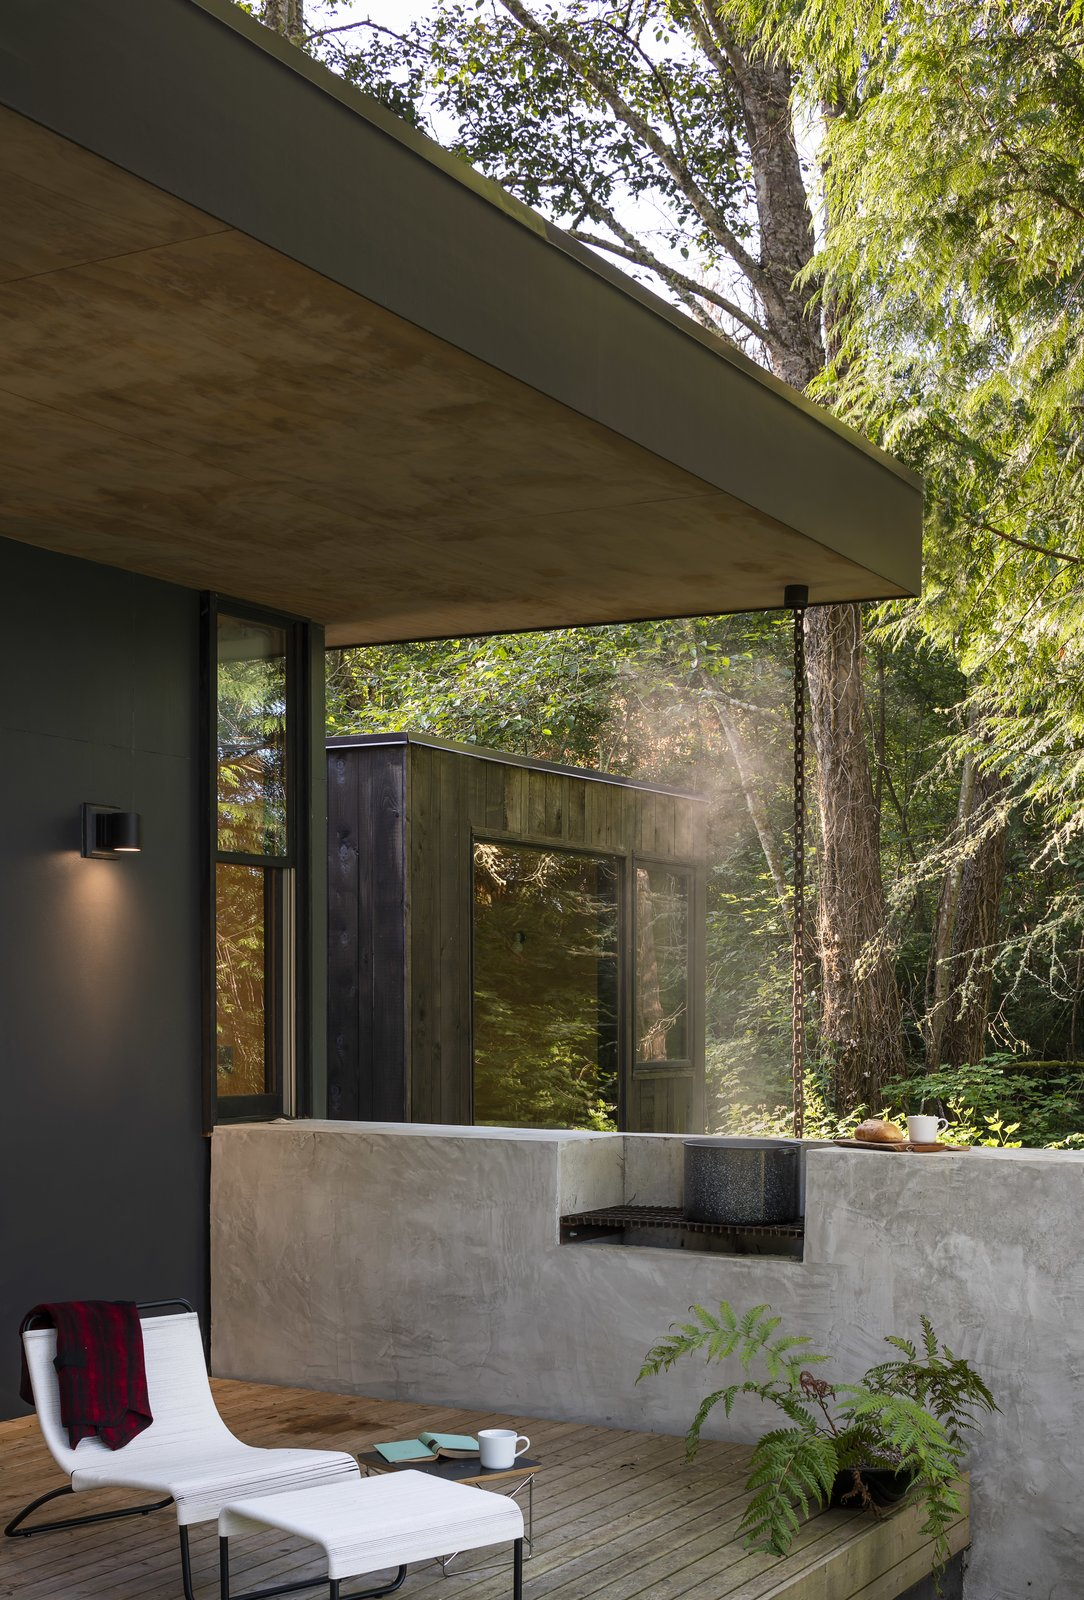 Hood Cliff Retreat (Wittman Estes)  Hood Cliff Retreat by Wittman Estes